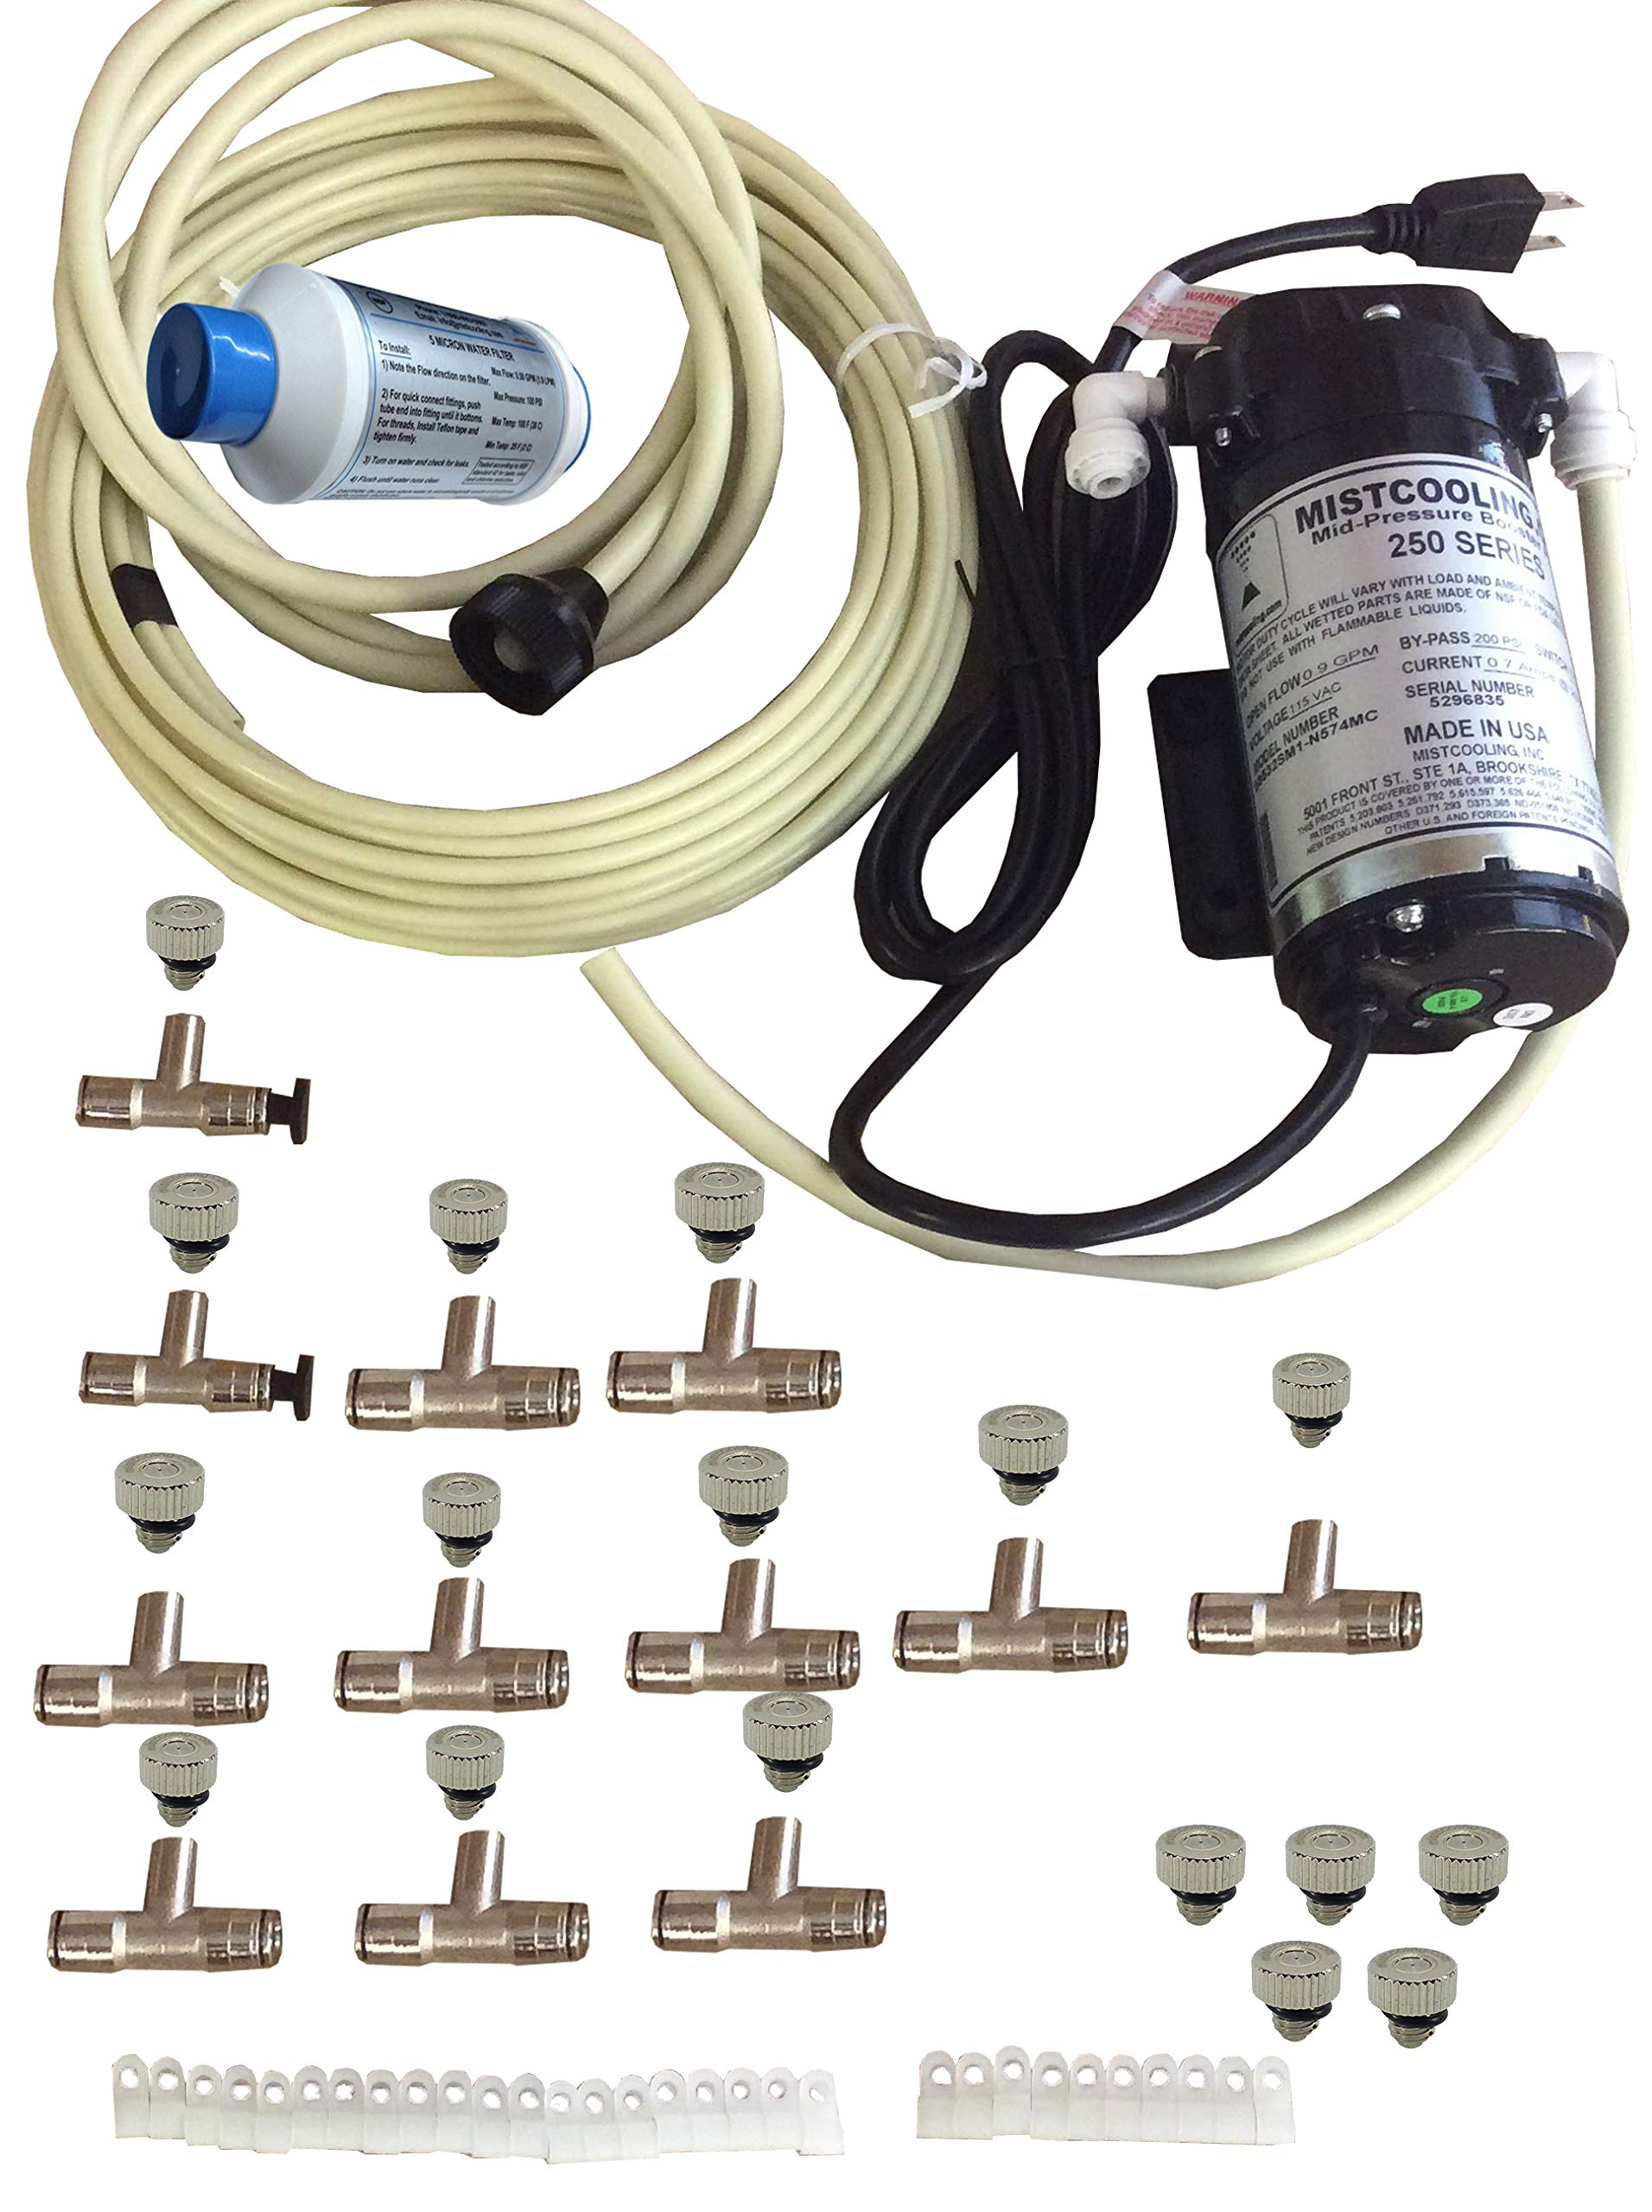 Mstcooling Mistcooling 12020 Mister-110 V AC Patio Mister-160 PSI System with Nickel Plated Mist Nozzles, BlackTubing by Mstcooling